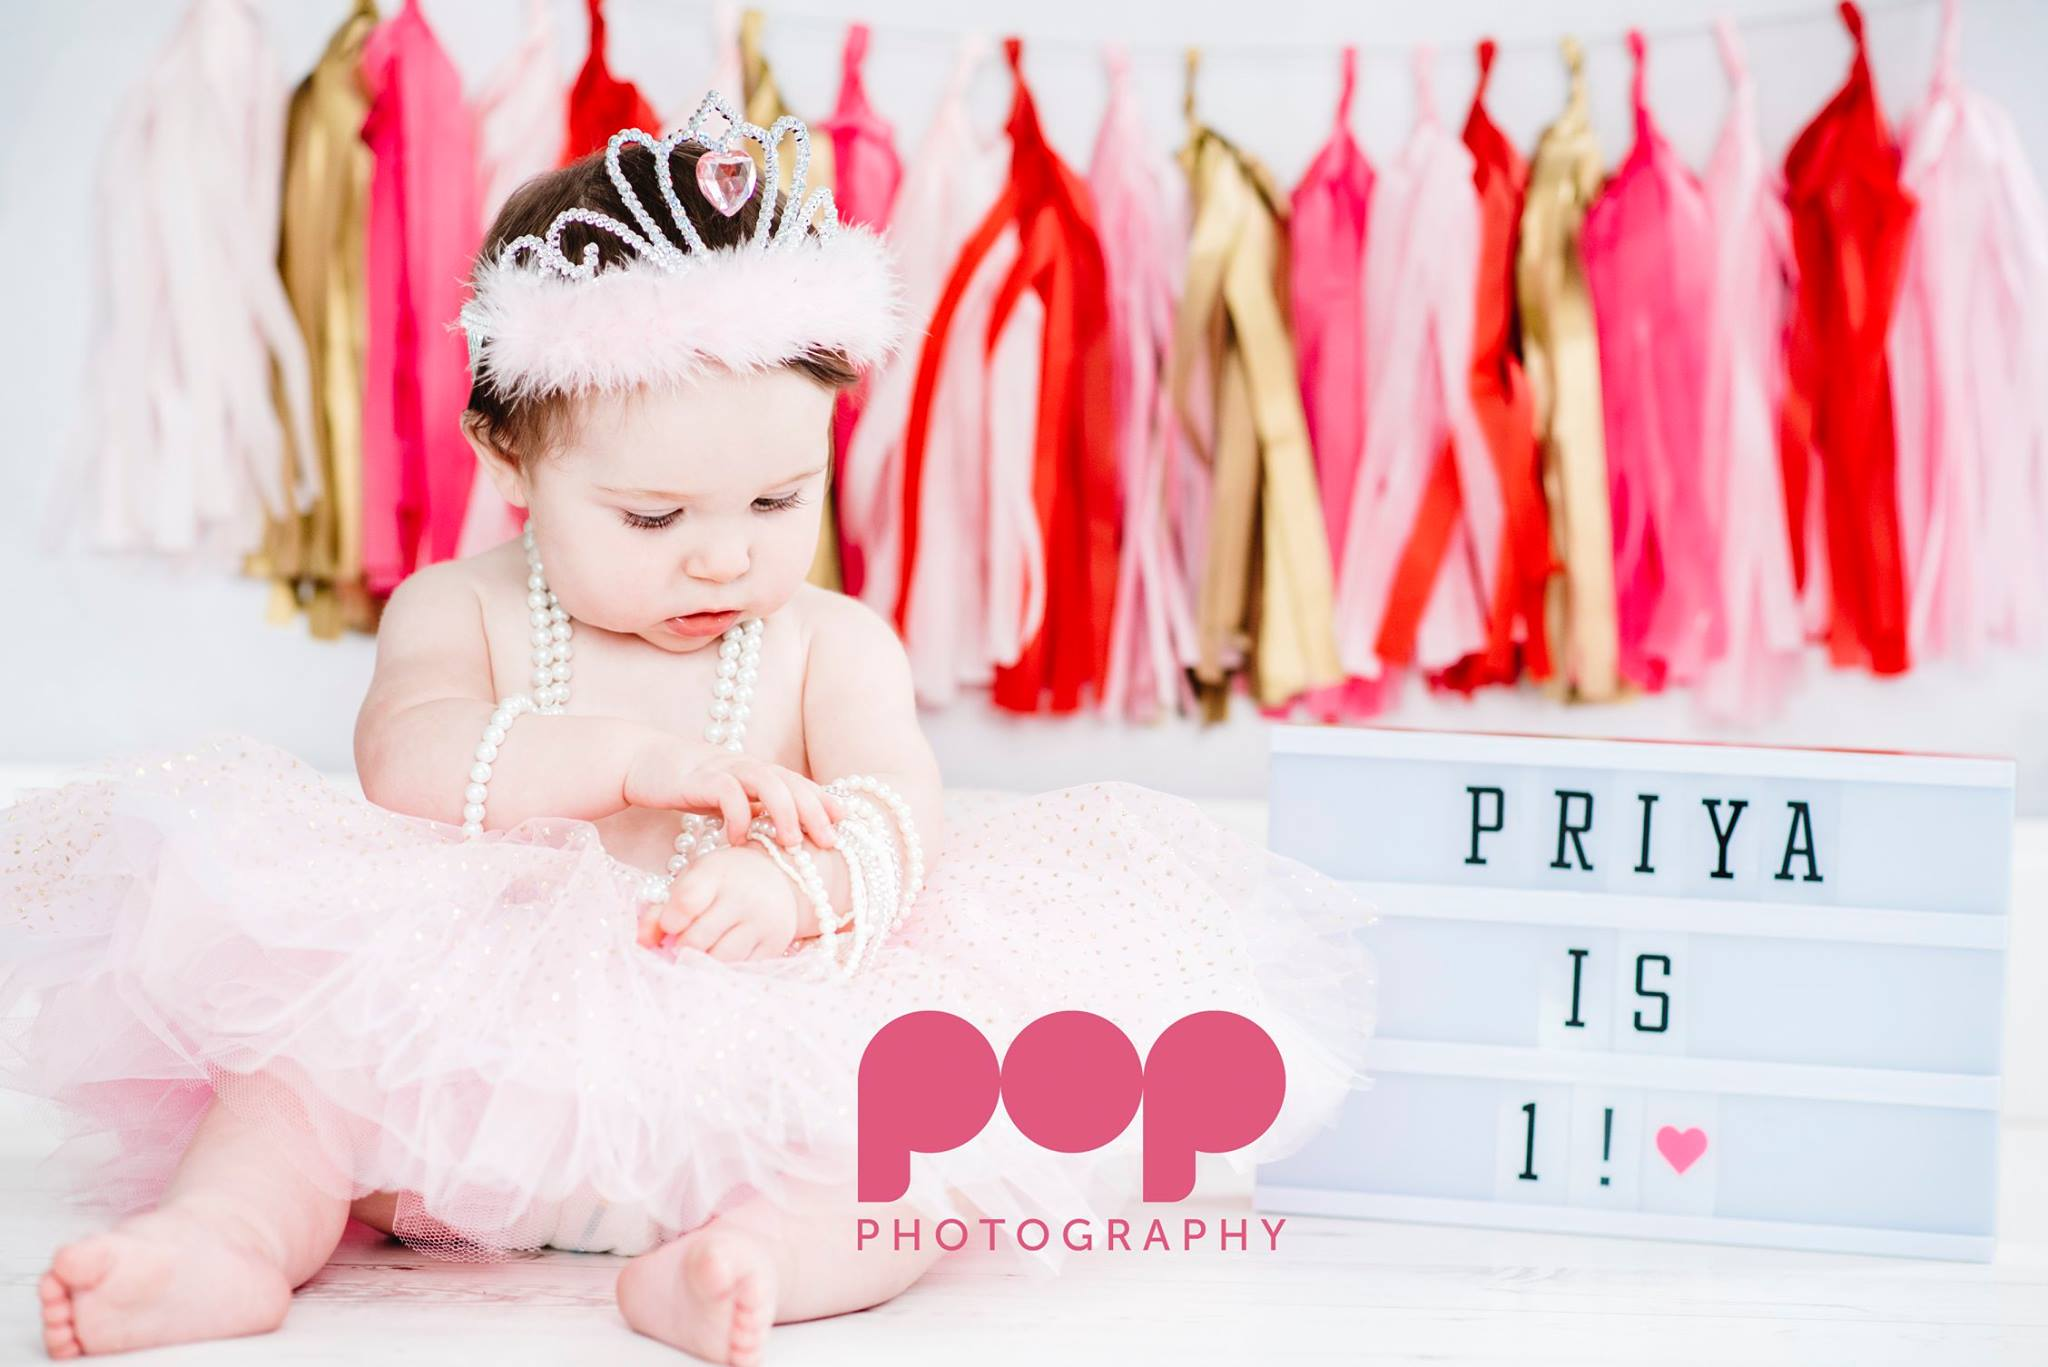 Photo © Copyright Pop Photography